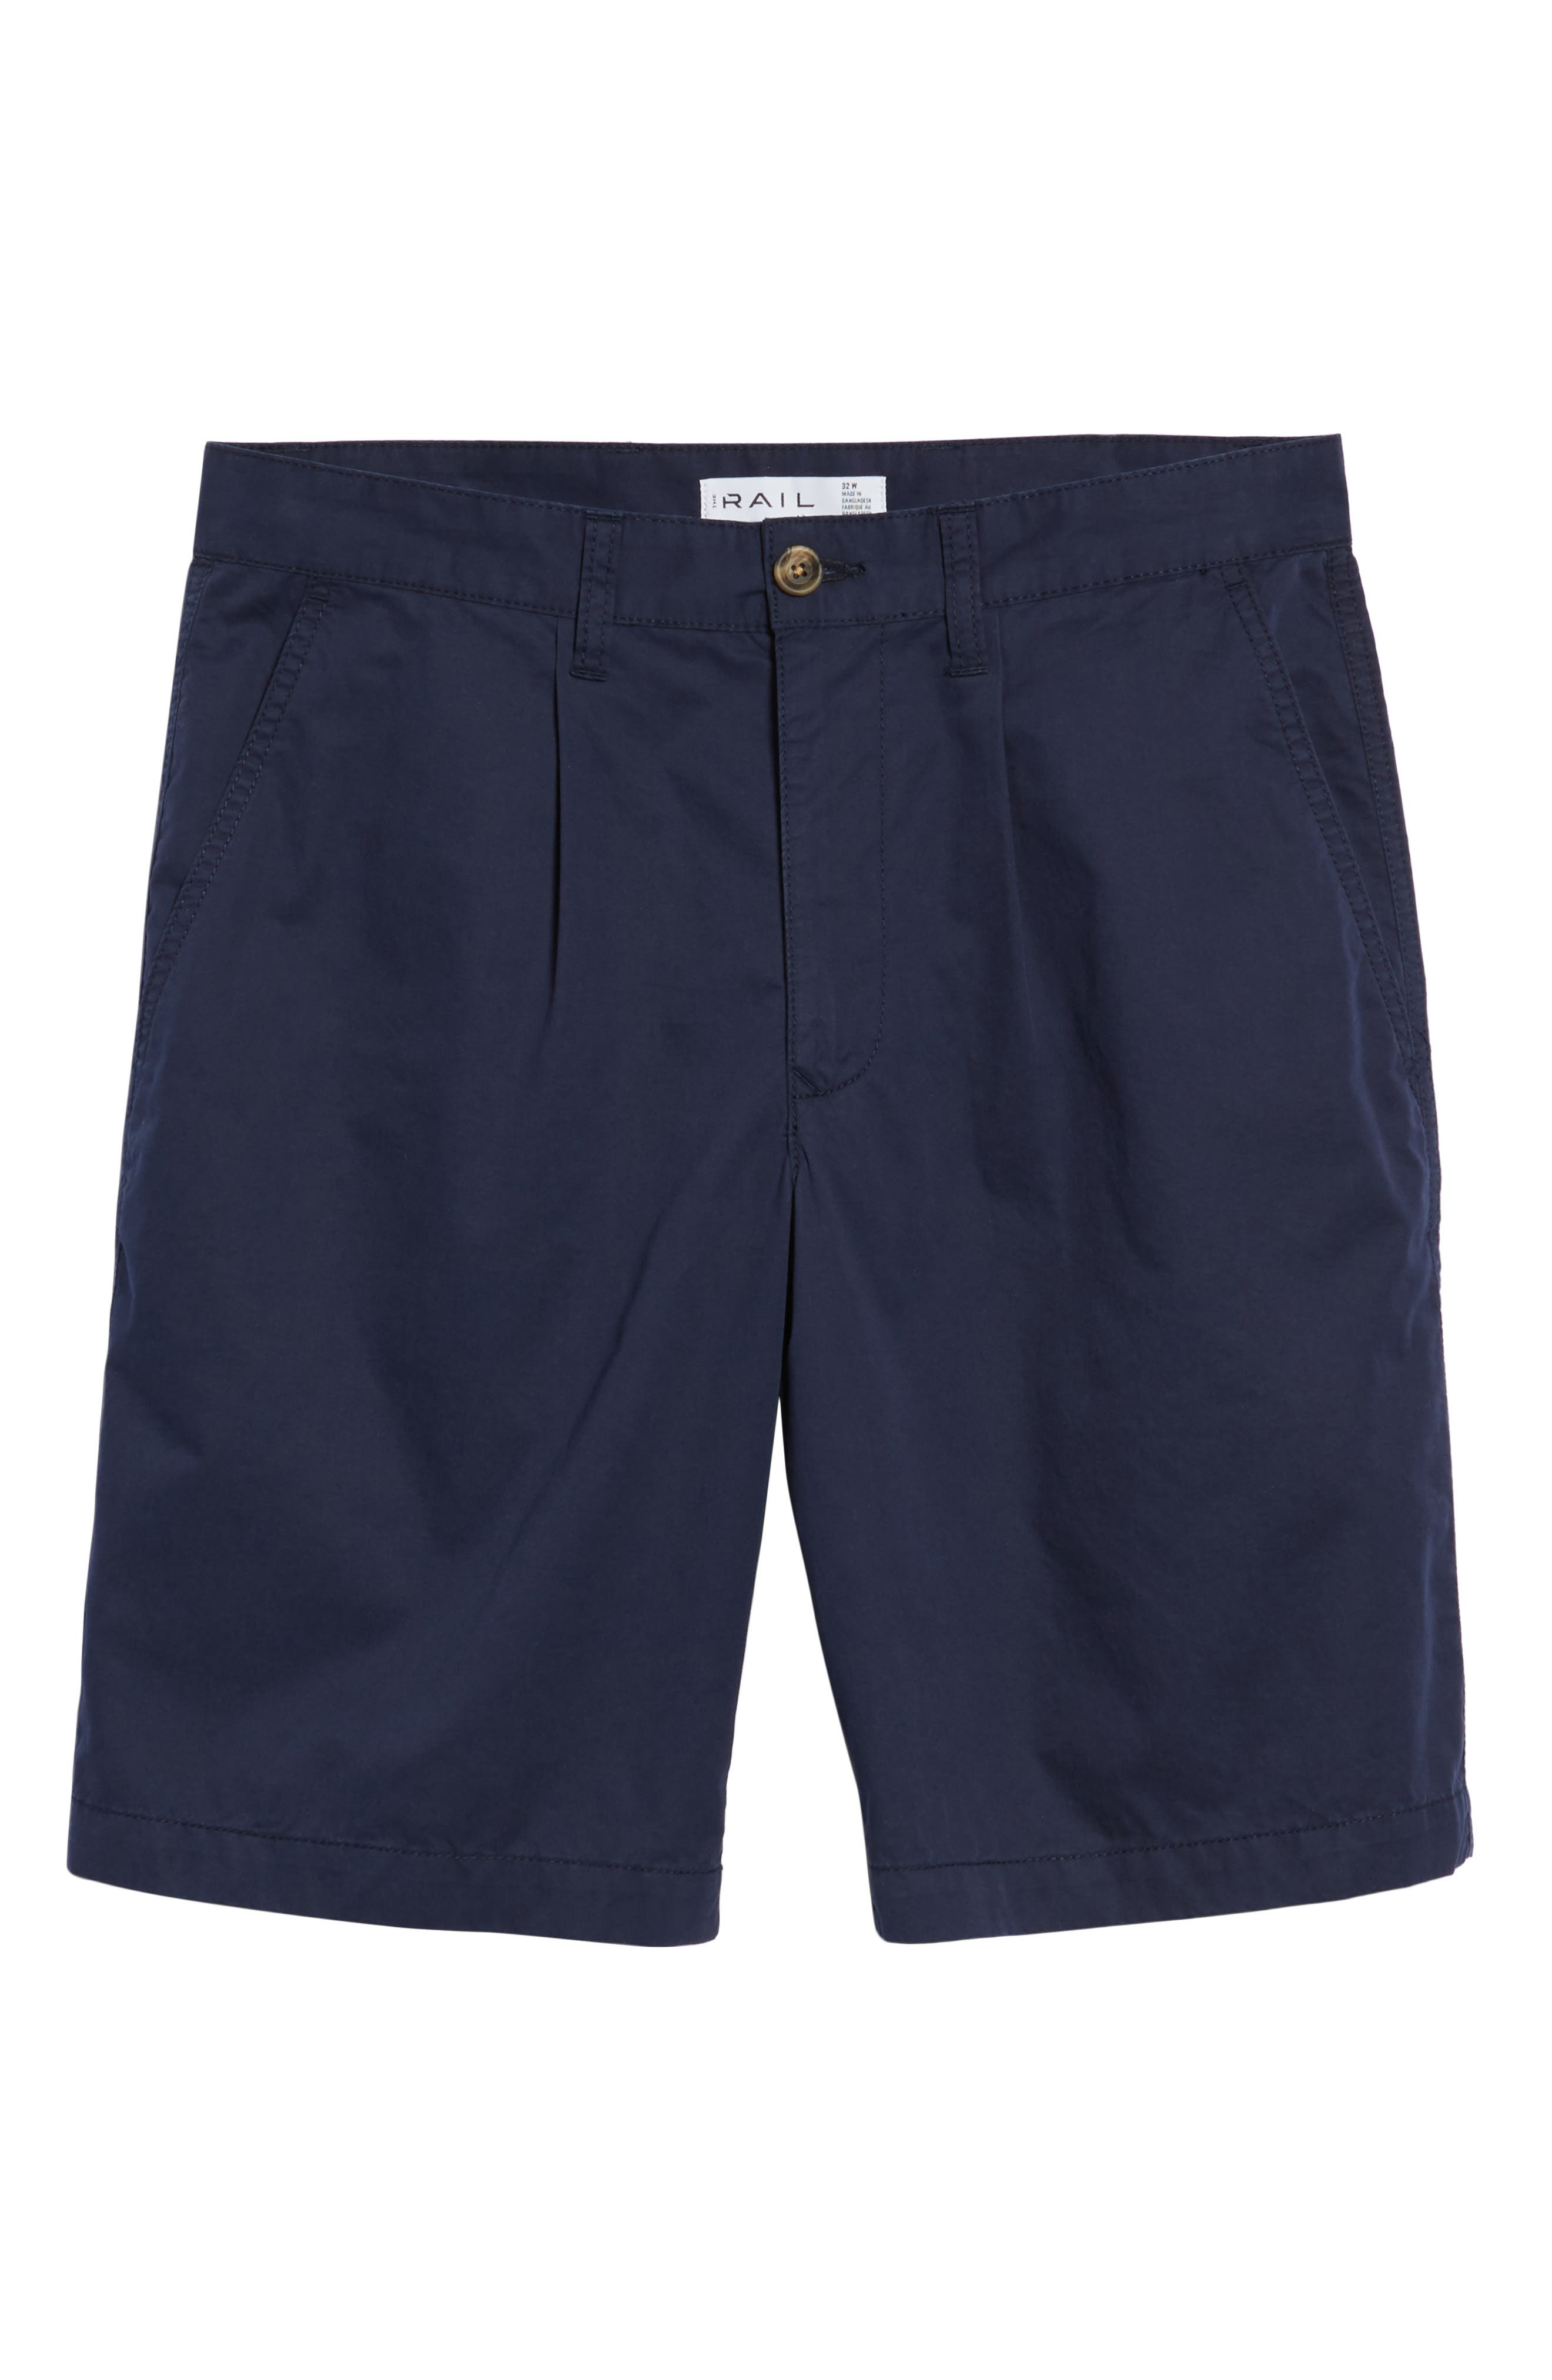 Pleated Chino Shorts,                             Alternate thumbnail 6, color,                             410